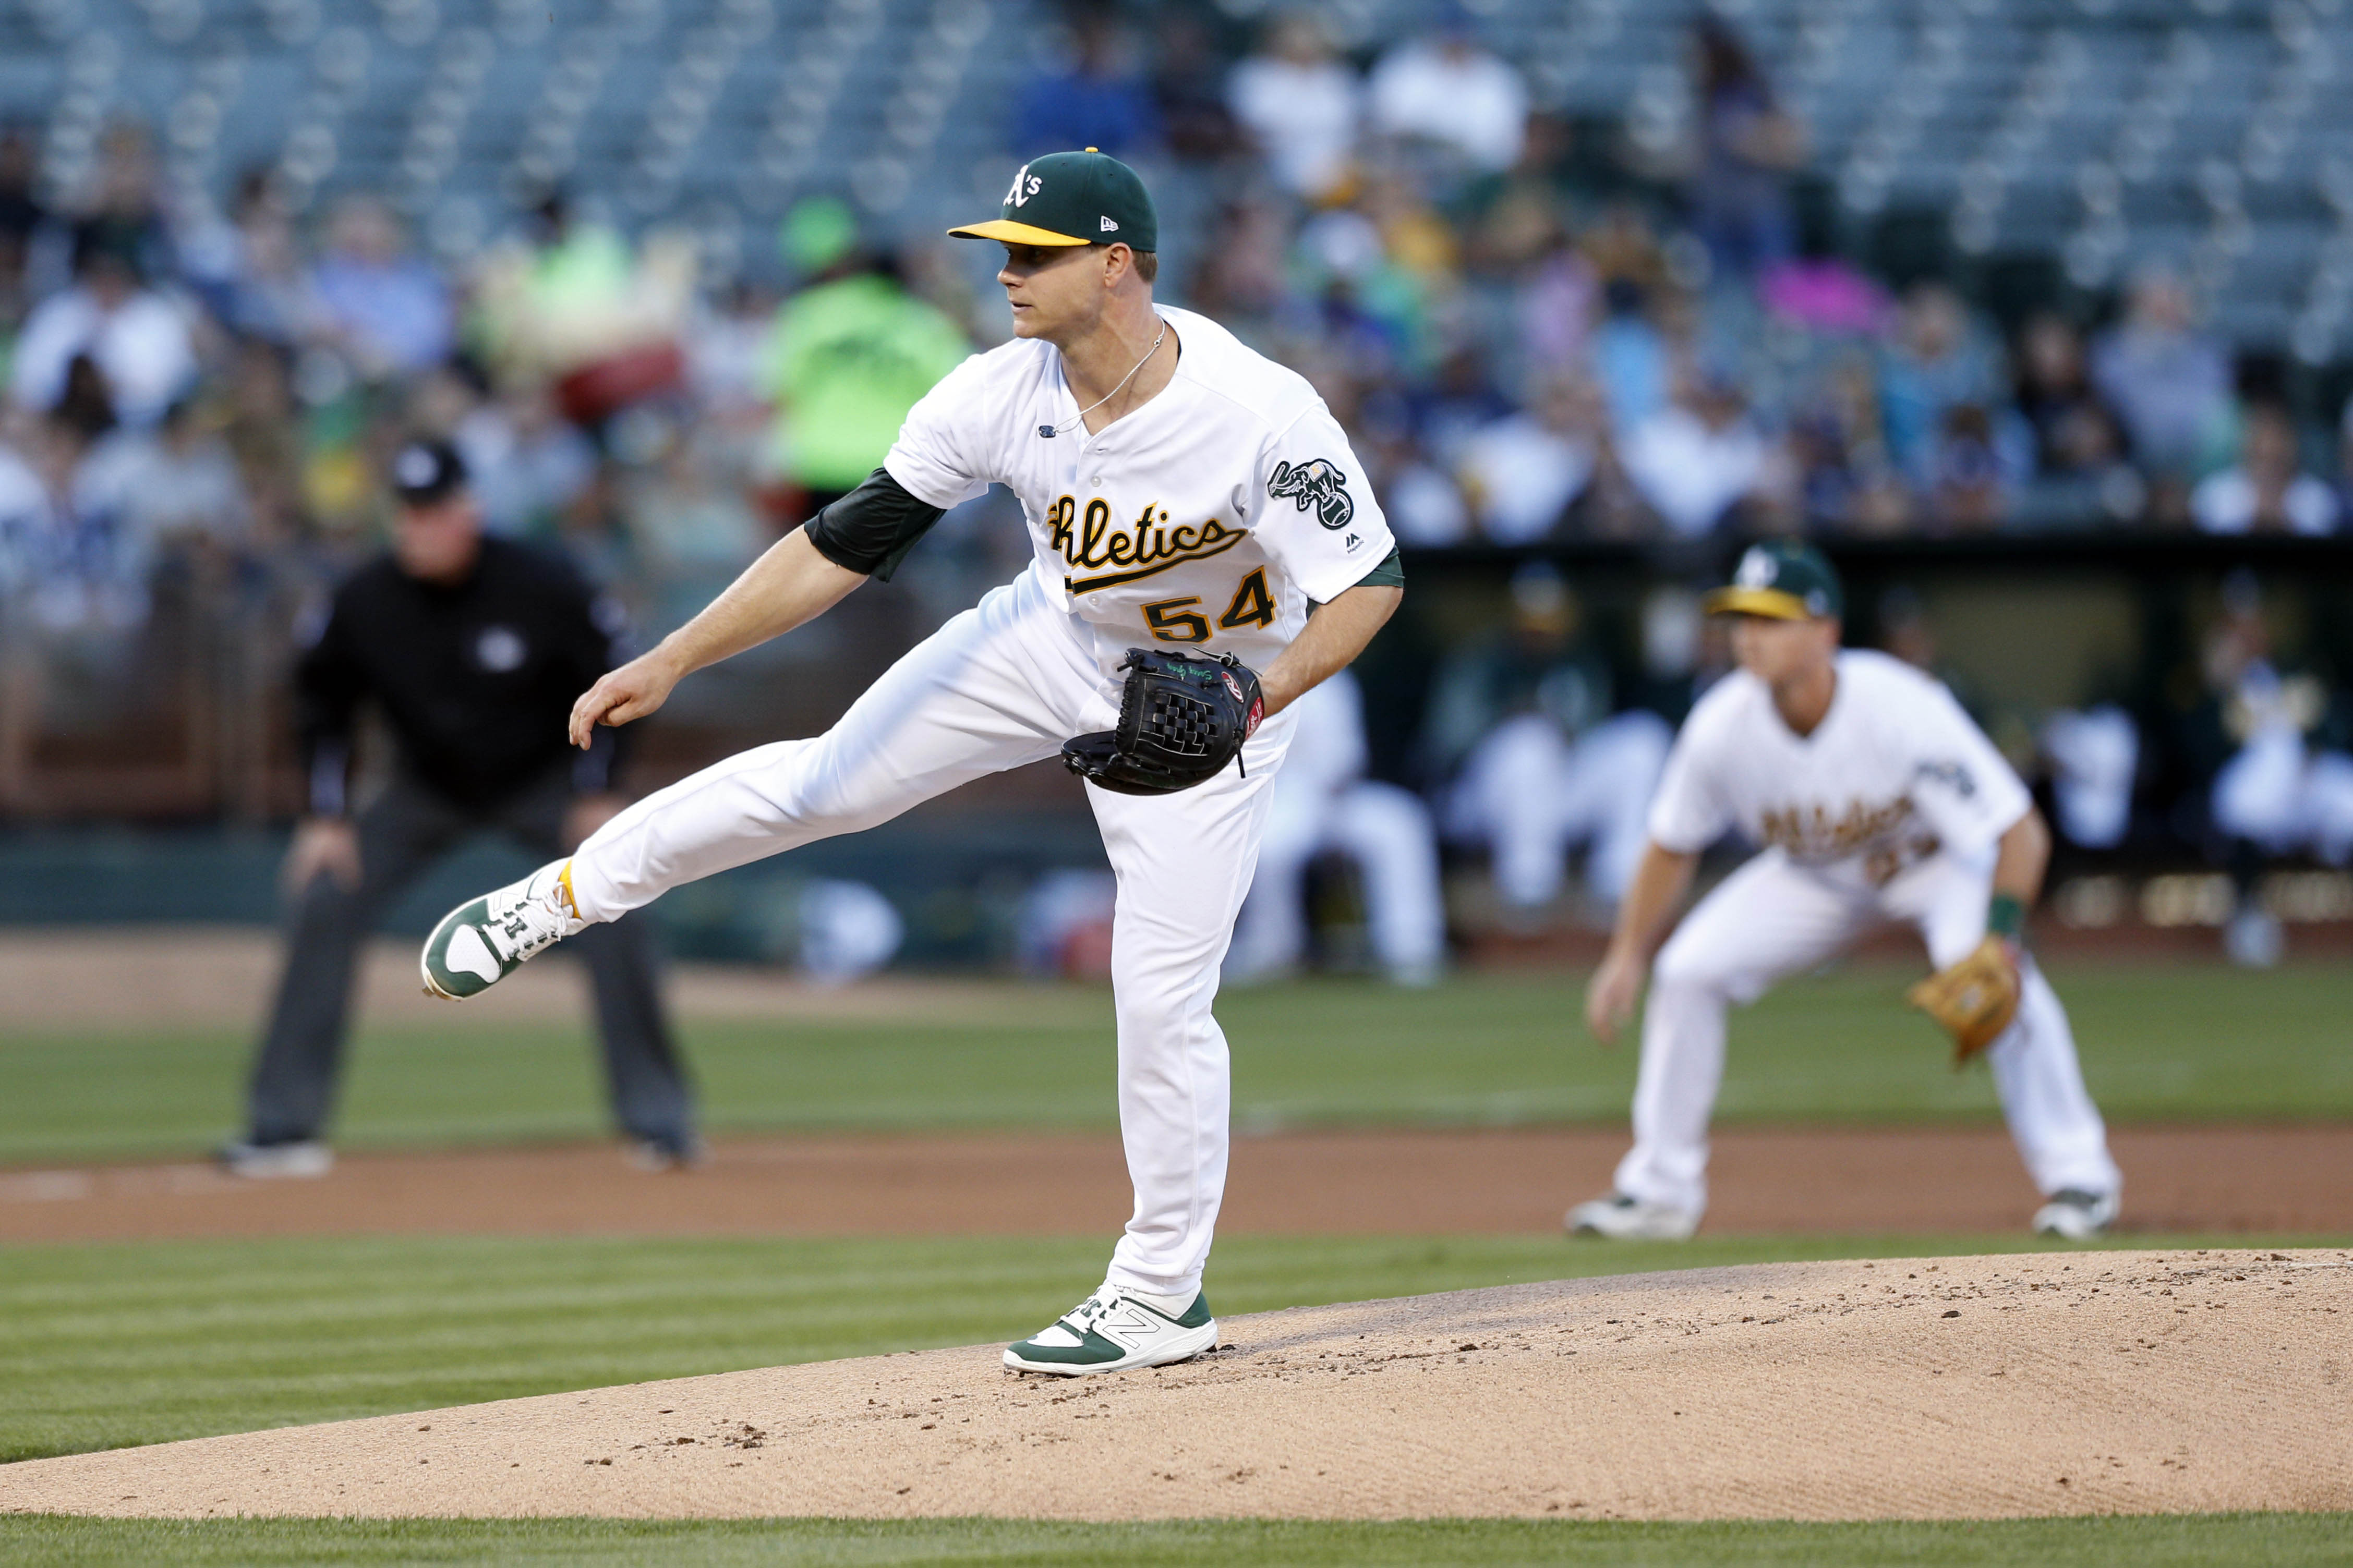 10113638-mlb-new-york-yankees-at-oakland-athletics